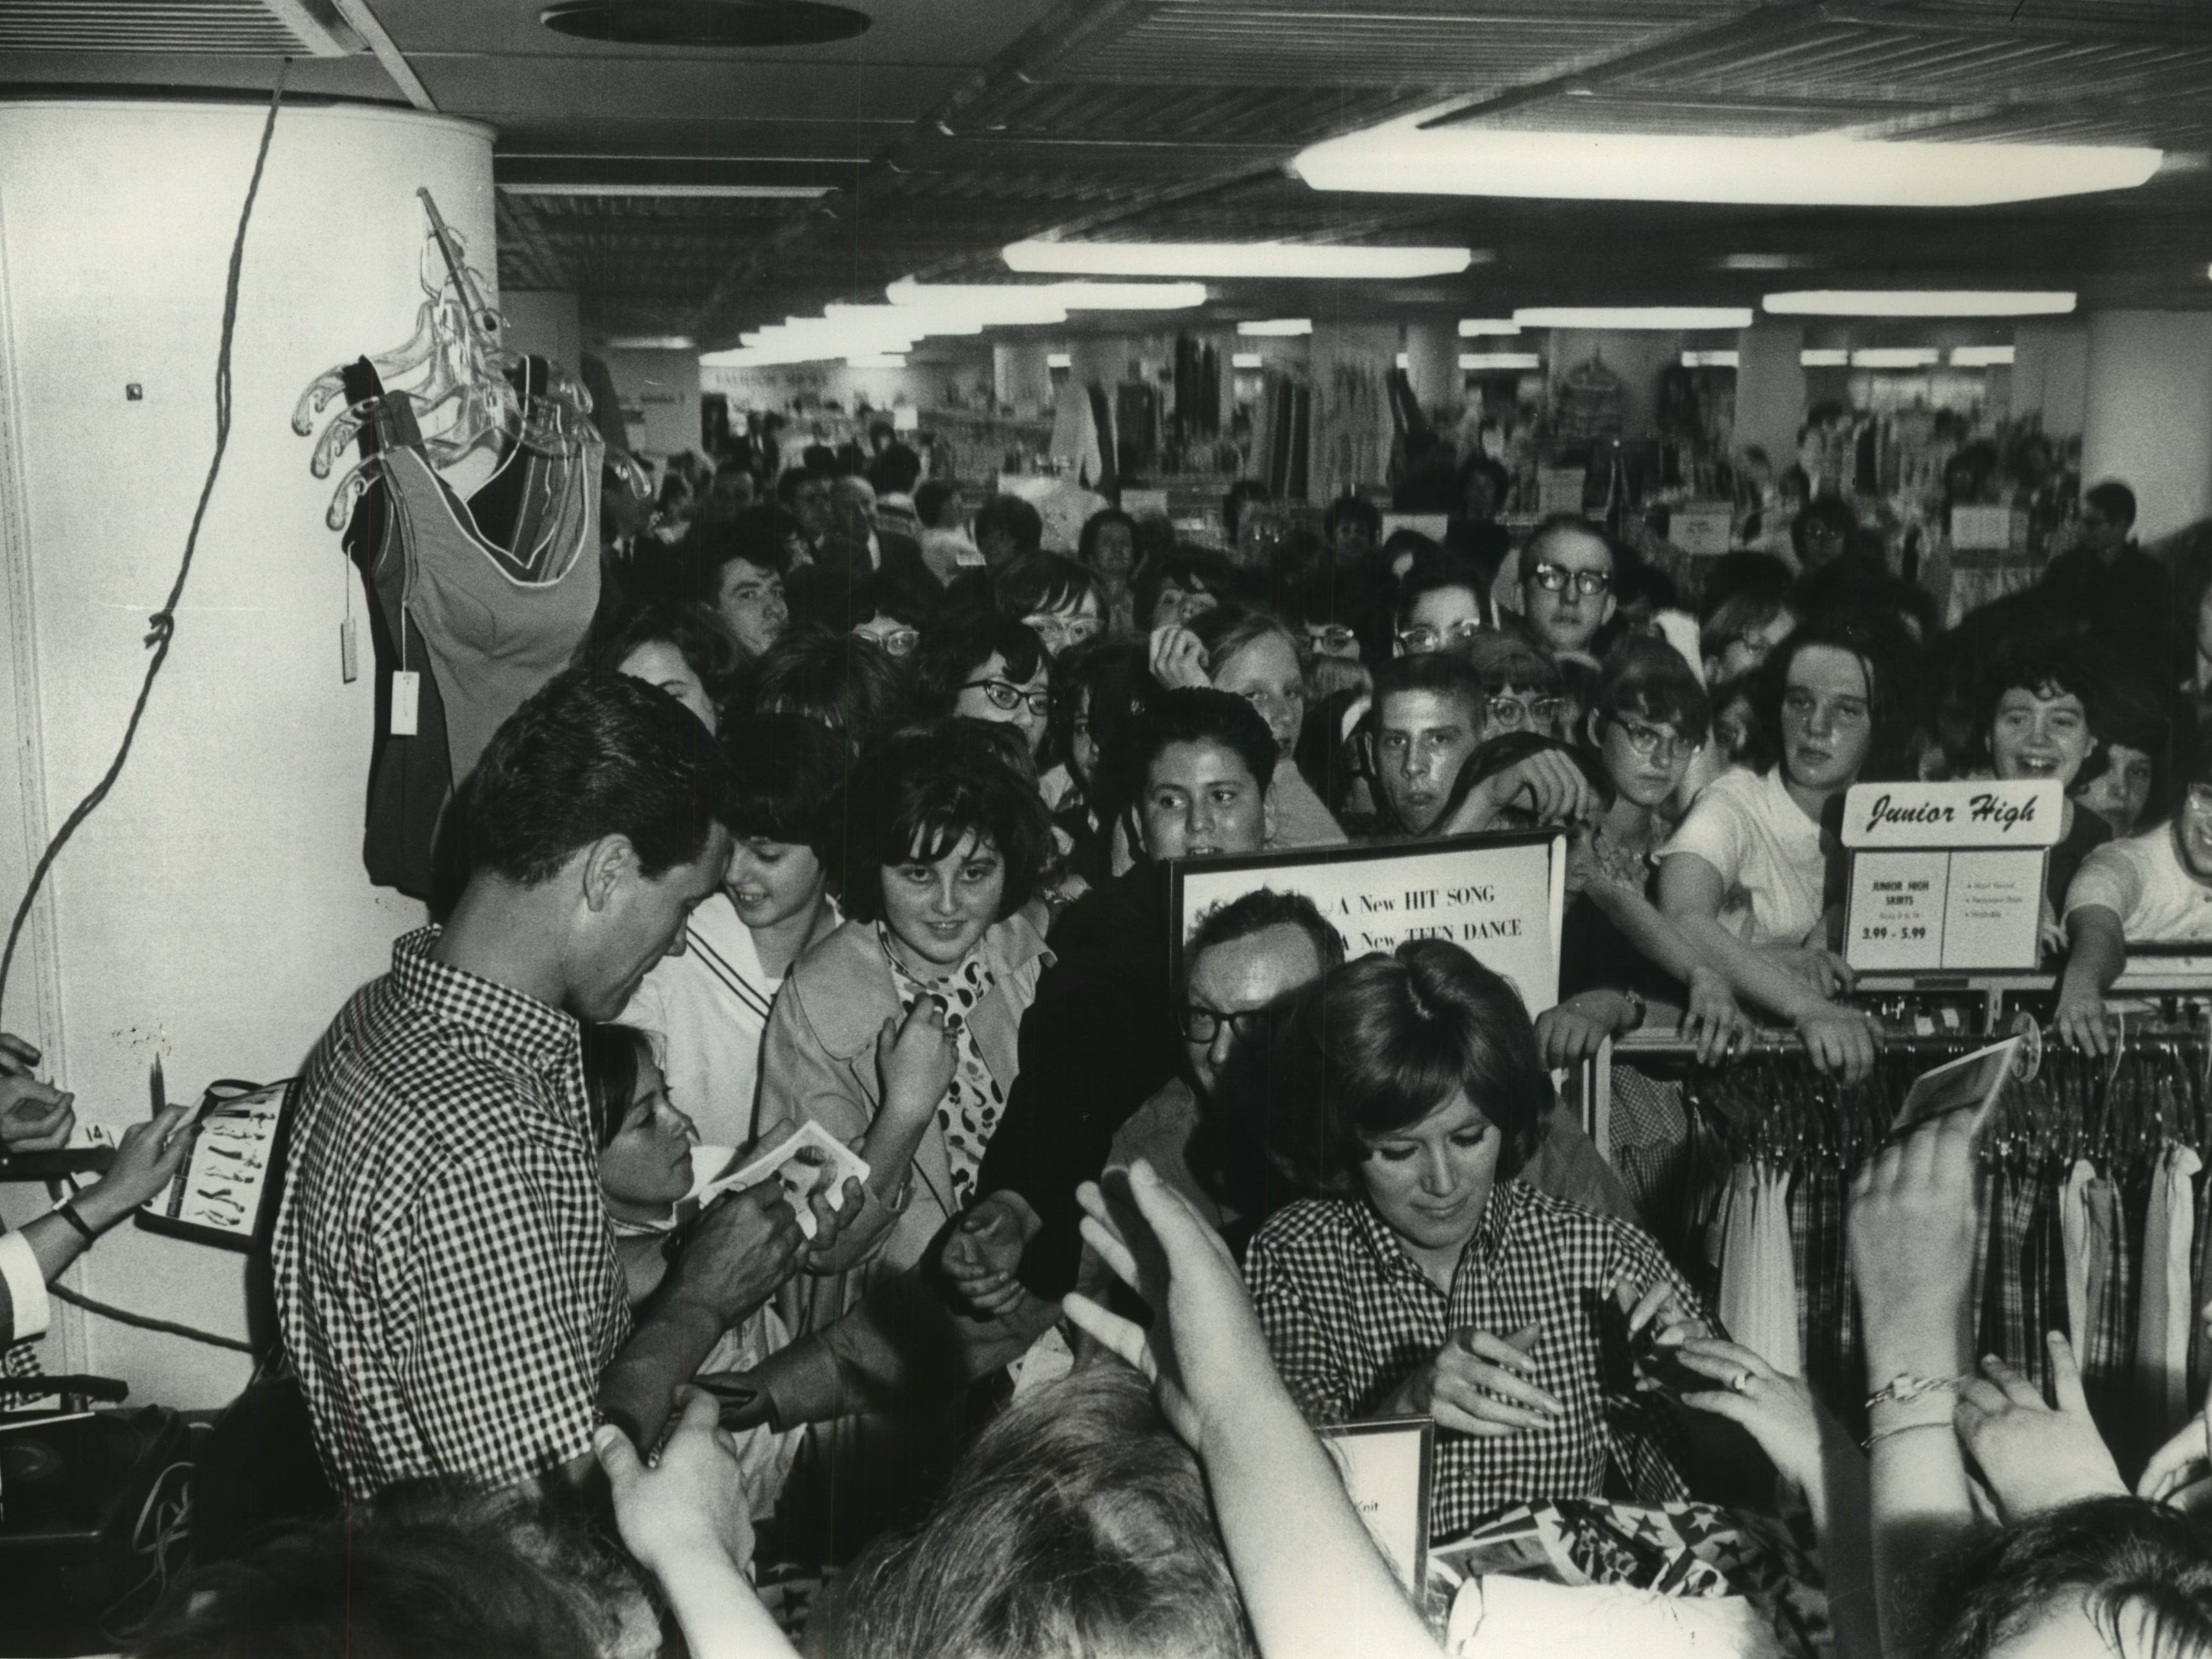 Television stars Roger Smith and Kathy Nolan signed autographs, May 17, 1964, for a throng of teenagers in the basement of the Boston Store.